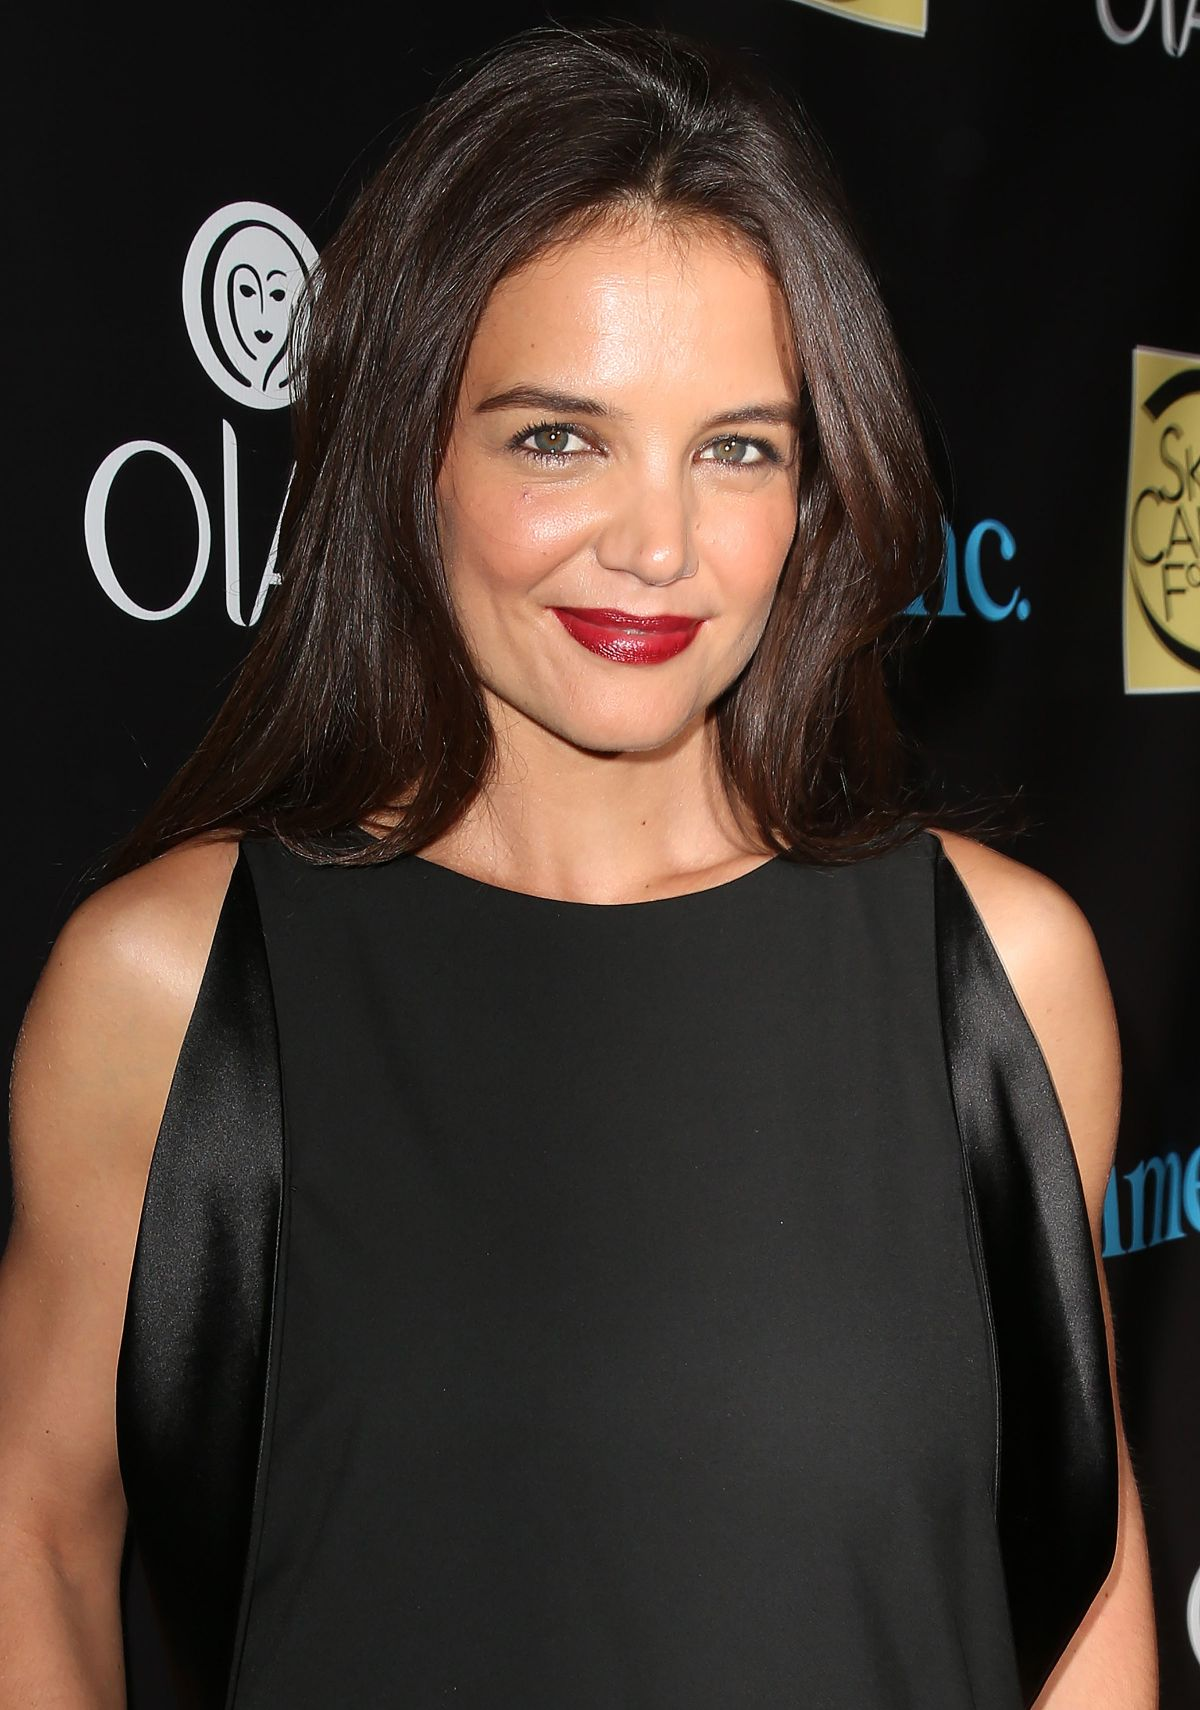 KATIE HOLMES at Skin Cancer Foundation Gala in New York